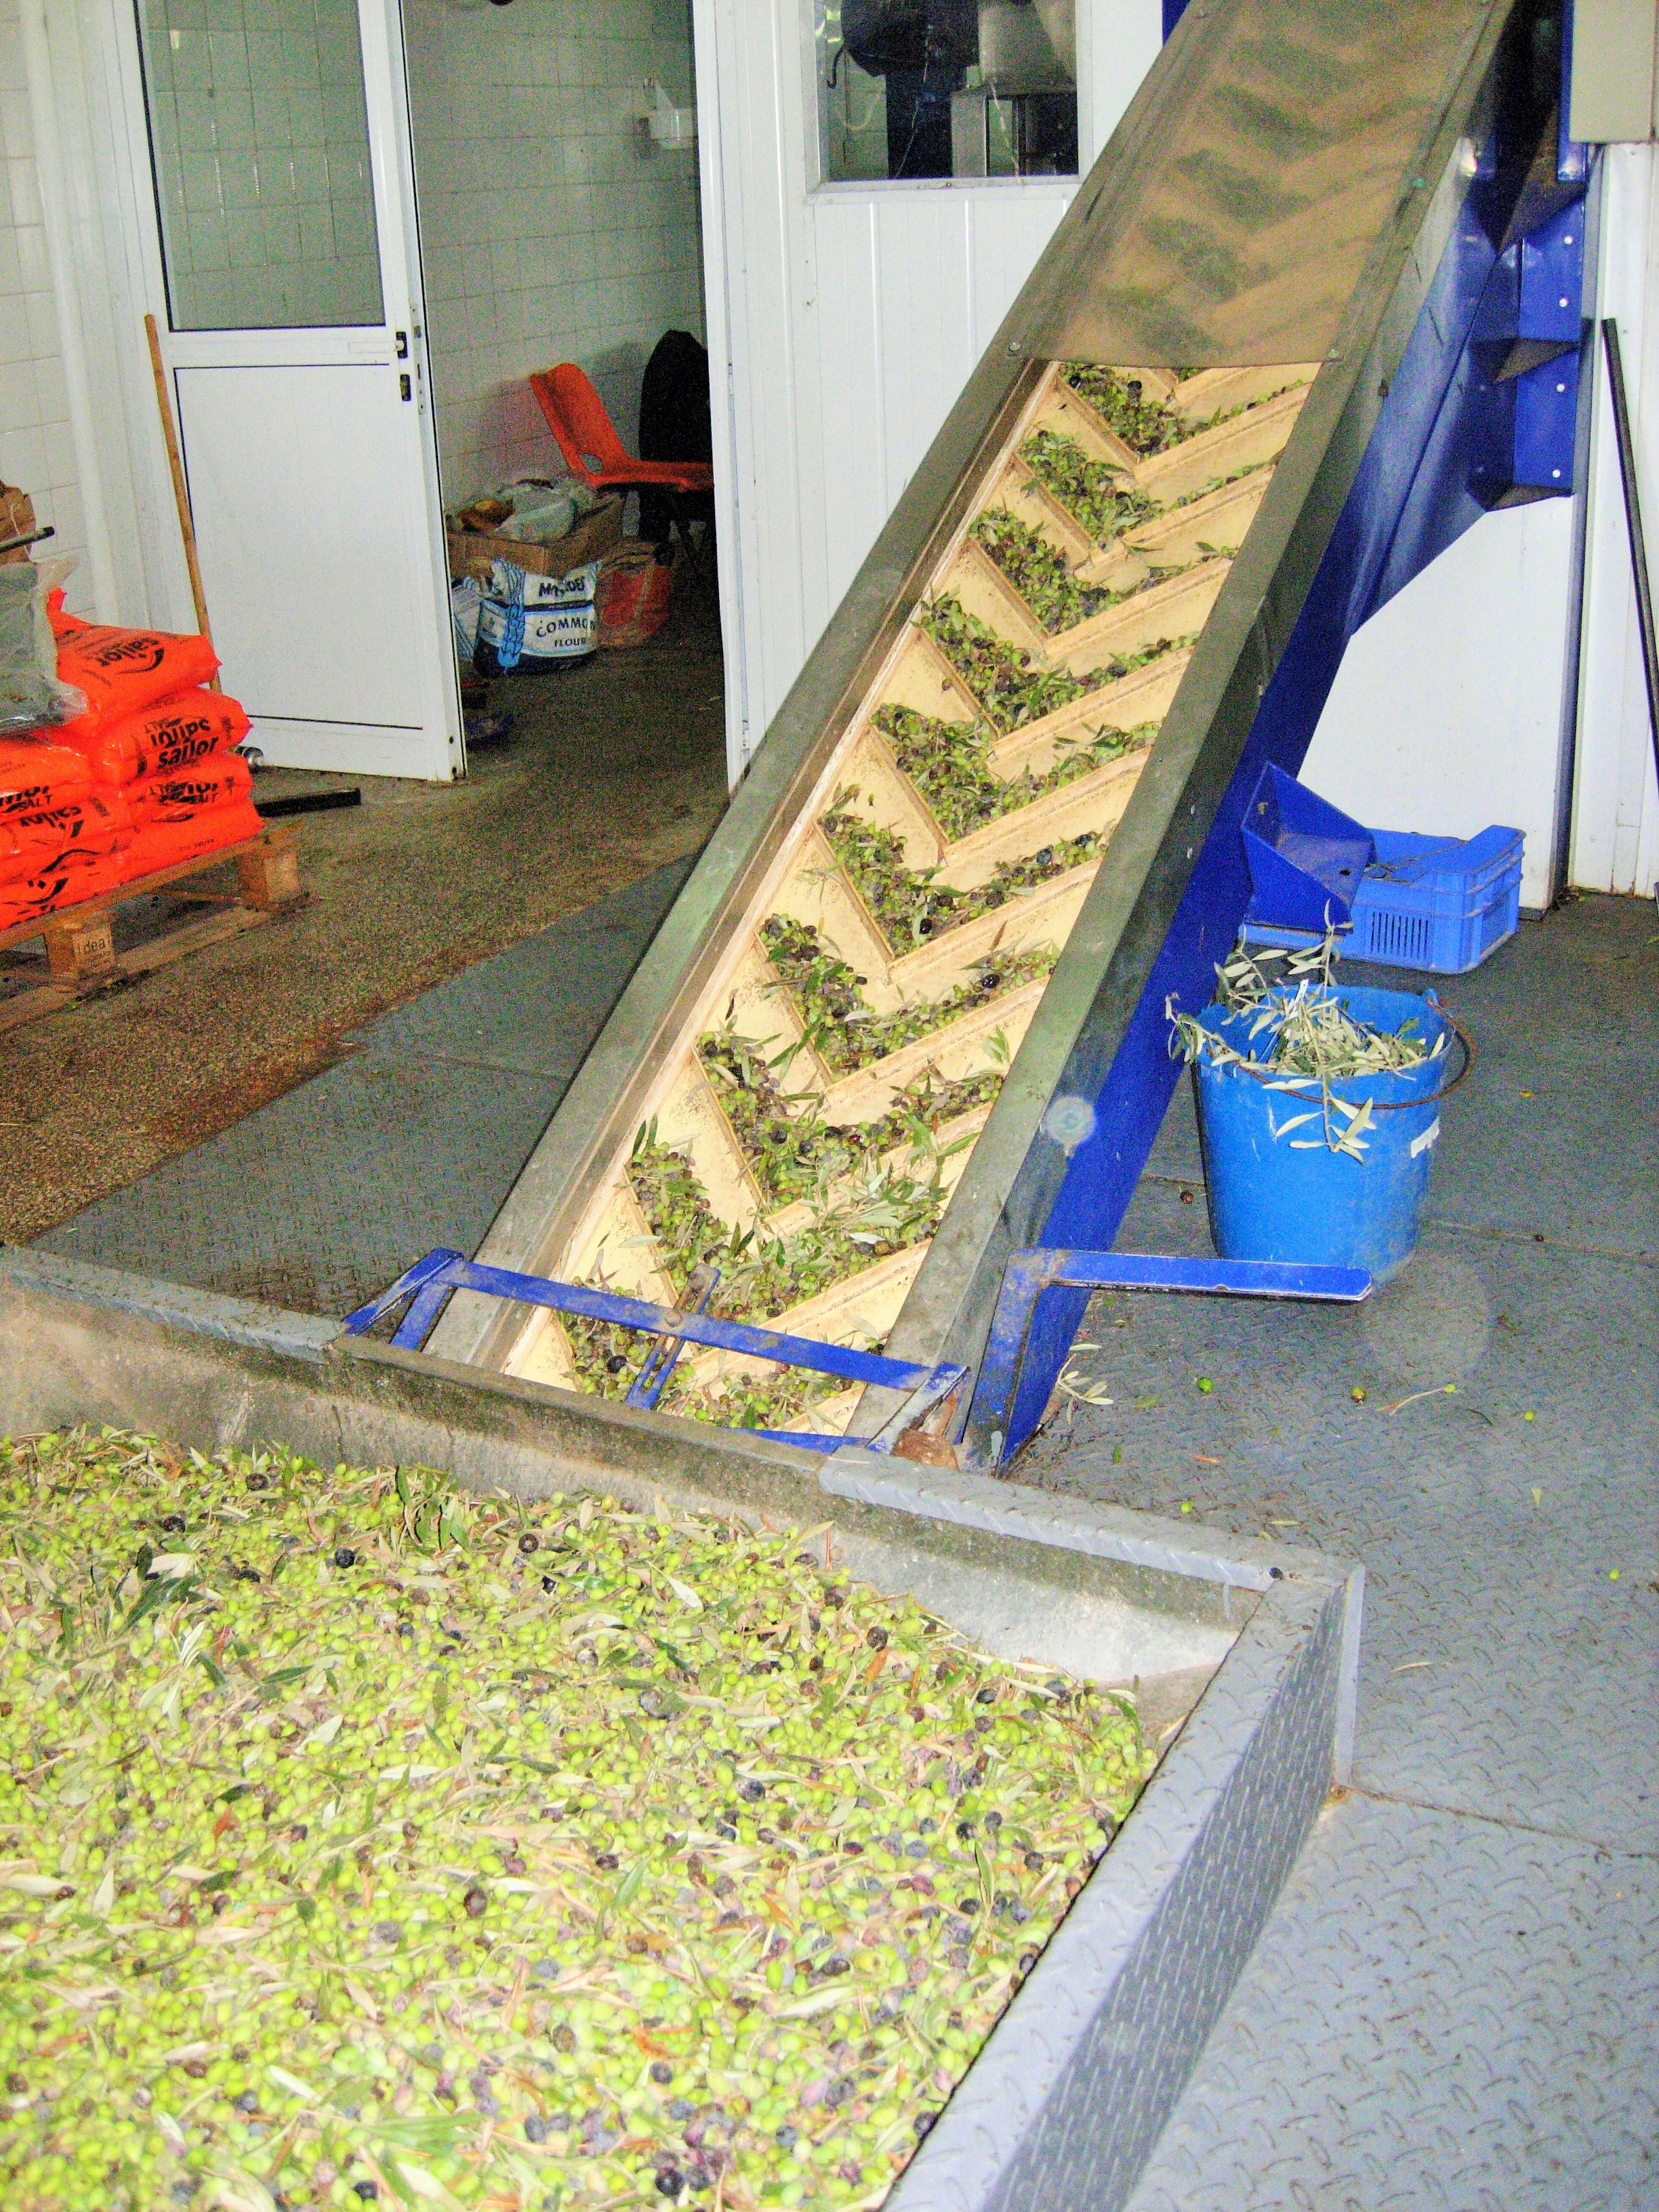 Olives loading into the washer